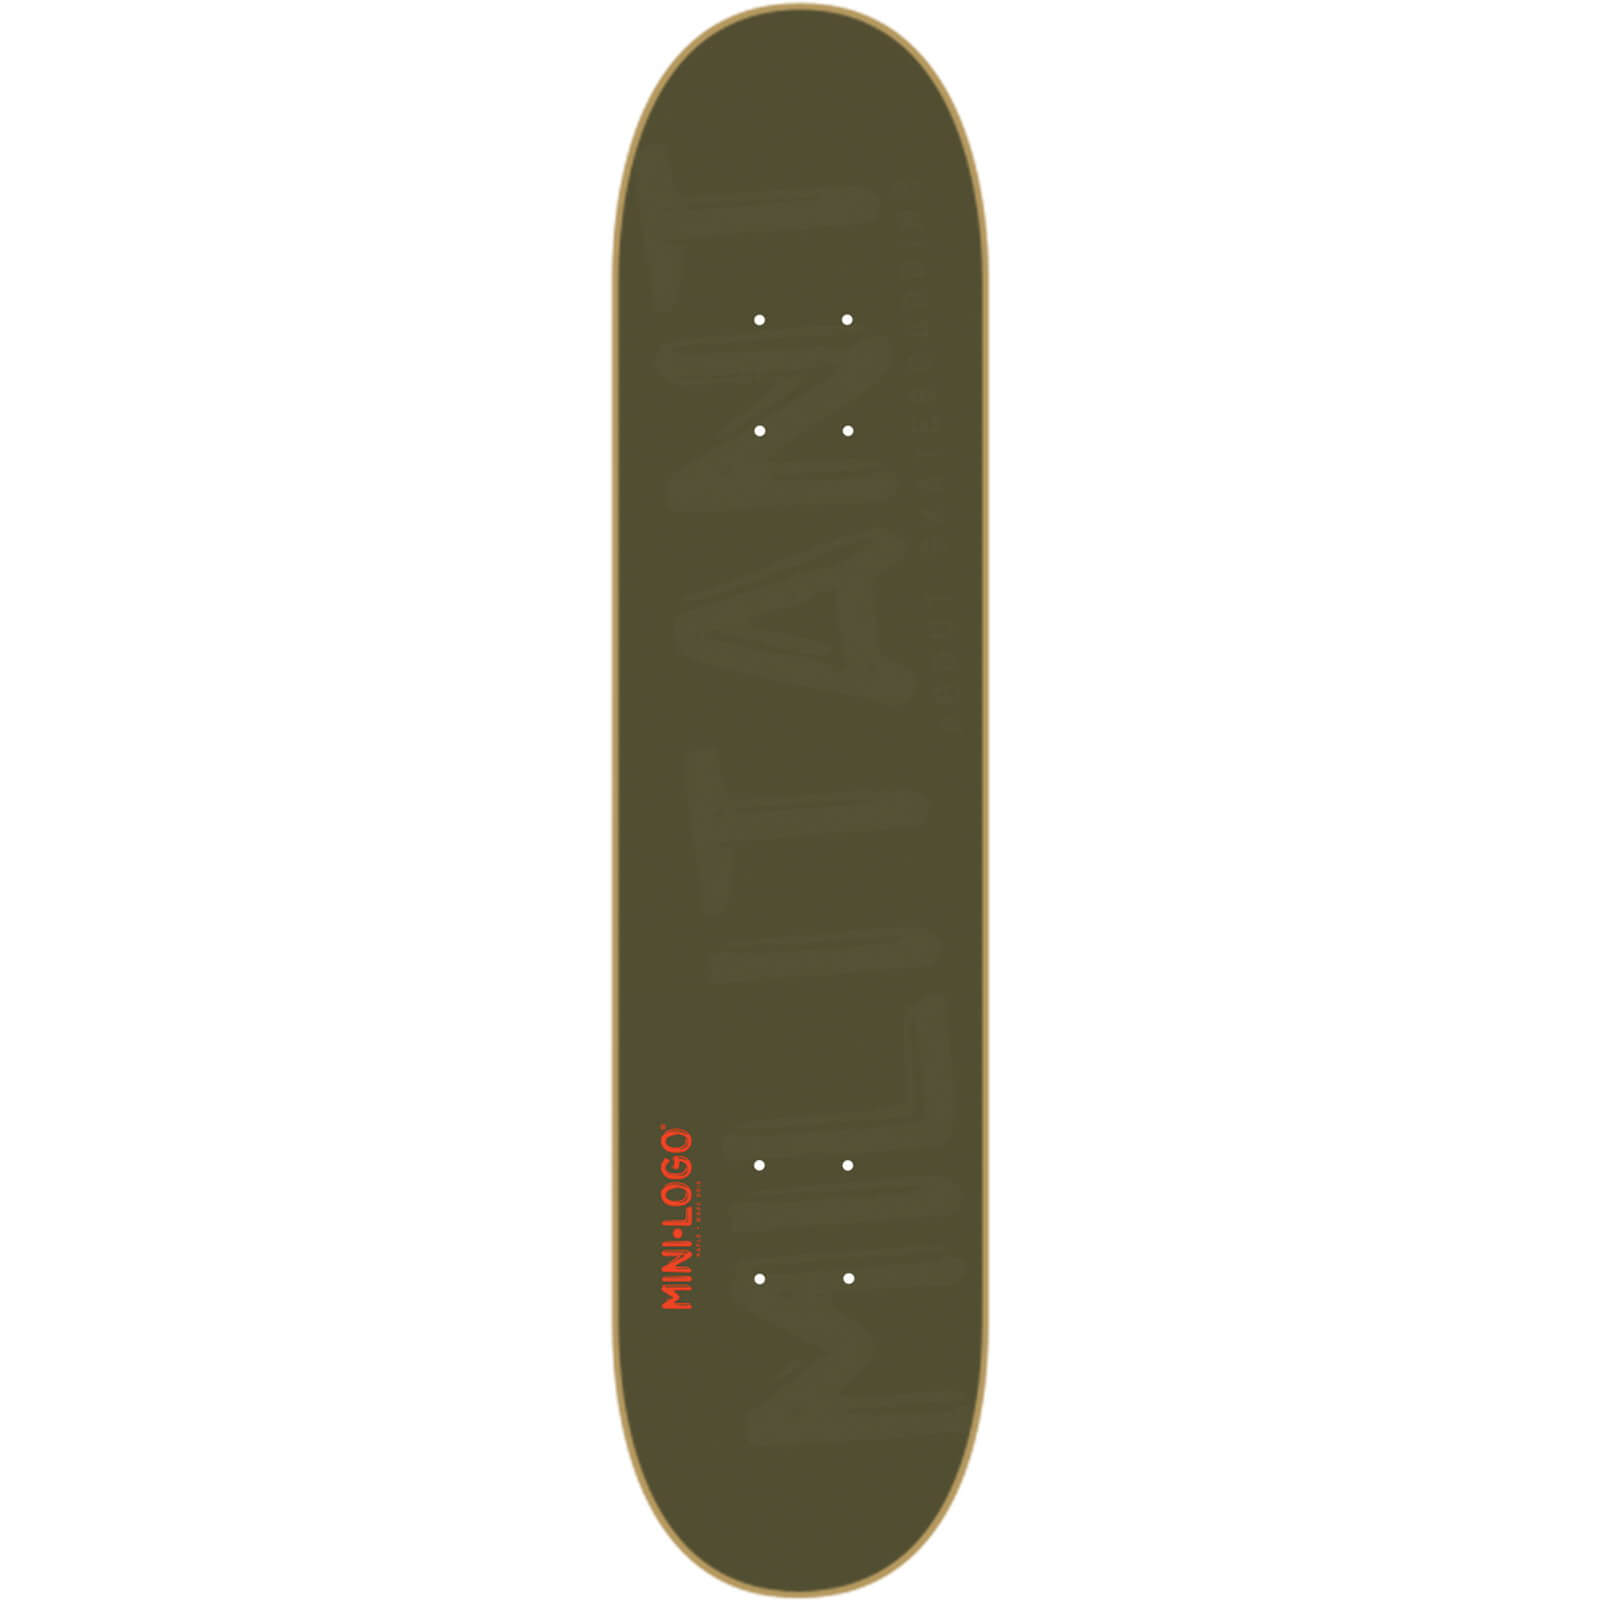 Mini Logo 112/K12 Deck